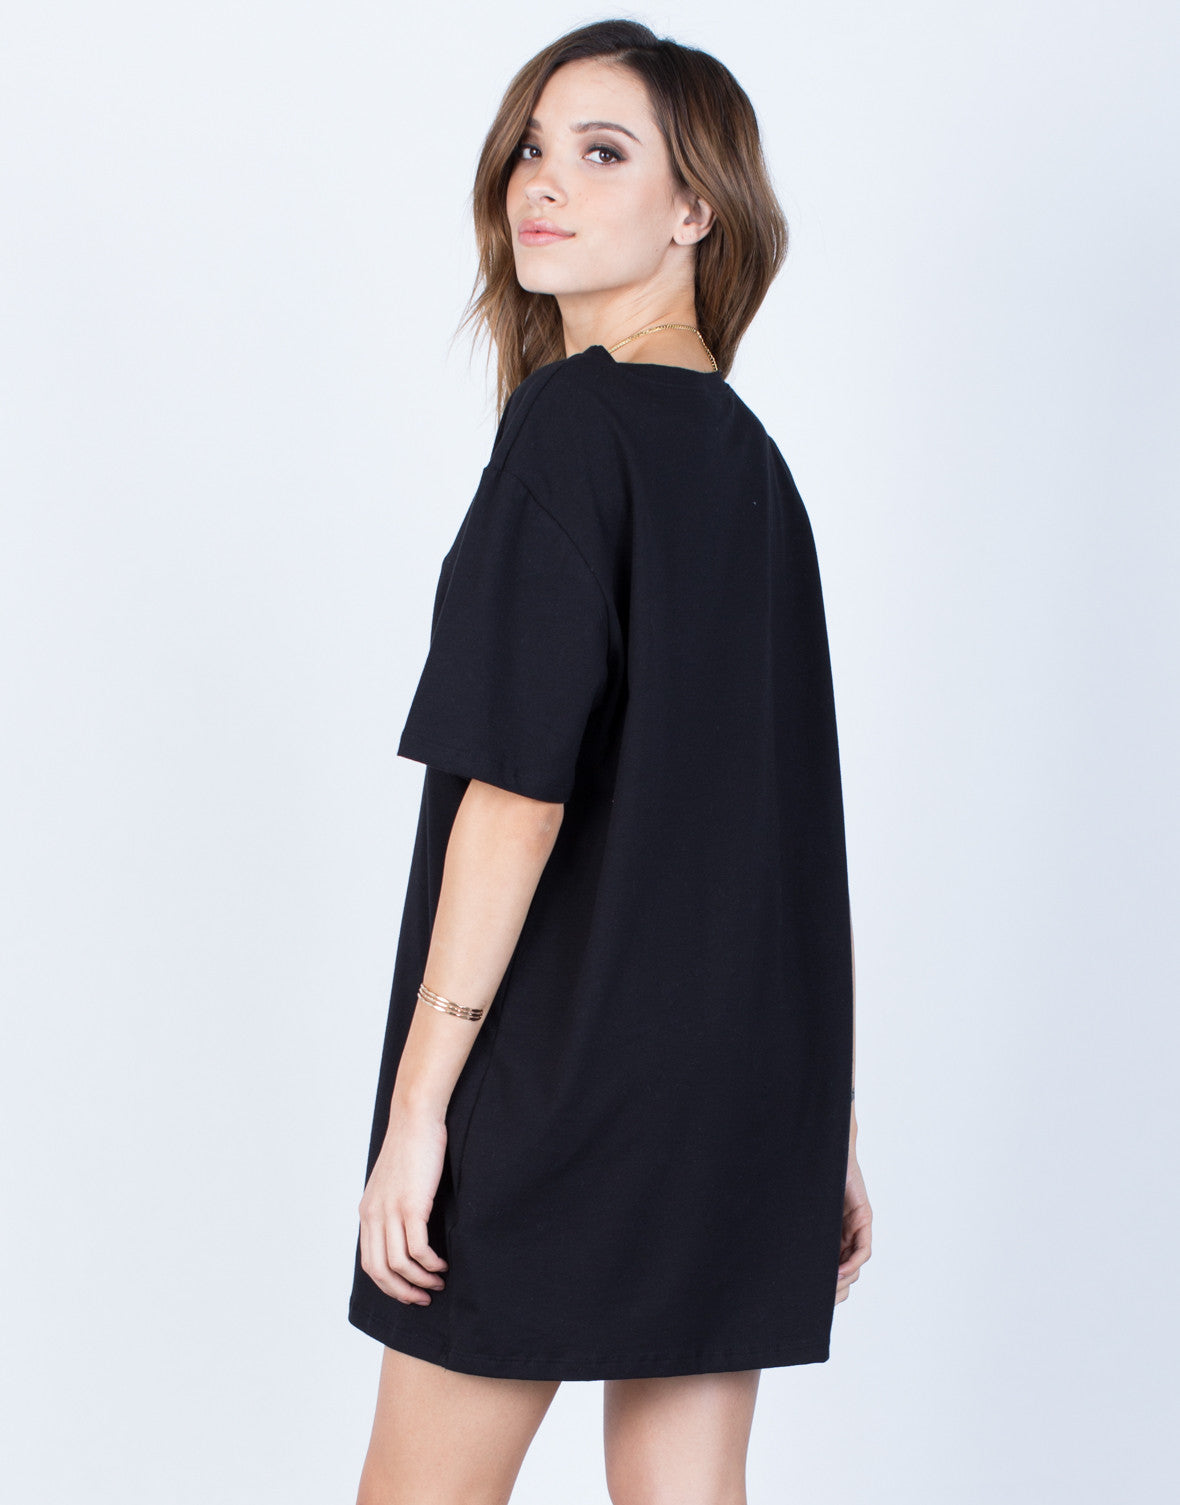 Back View of Oversized Tee Dress